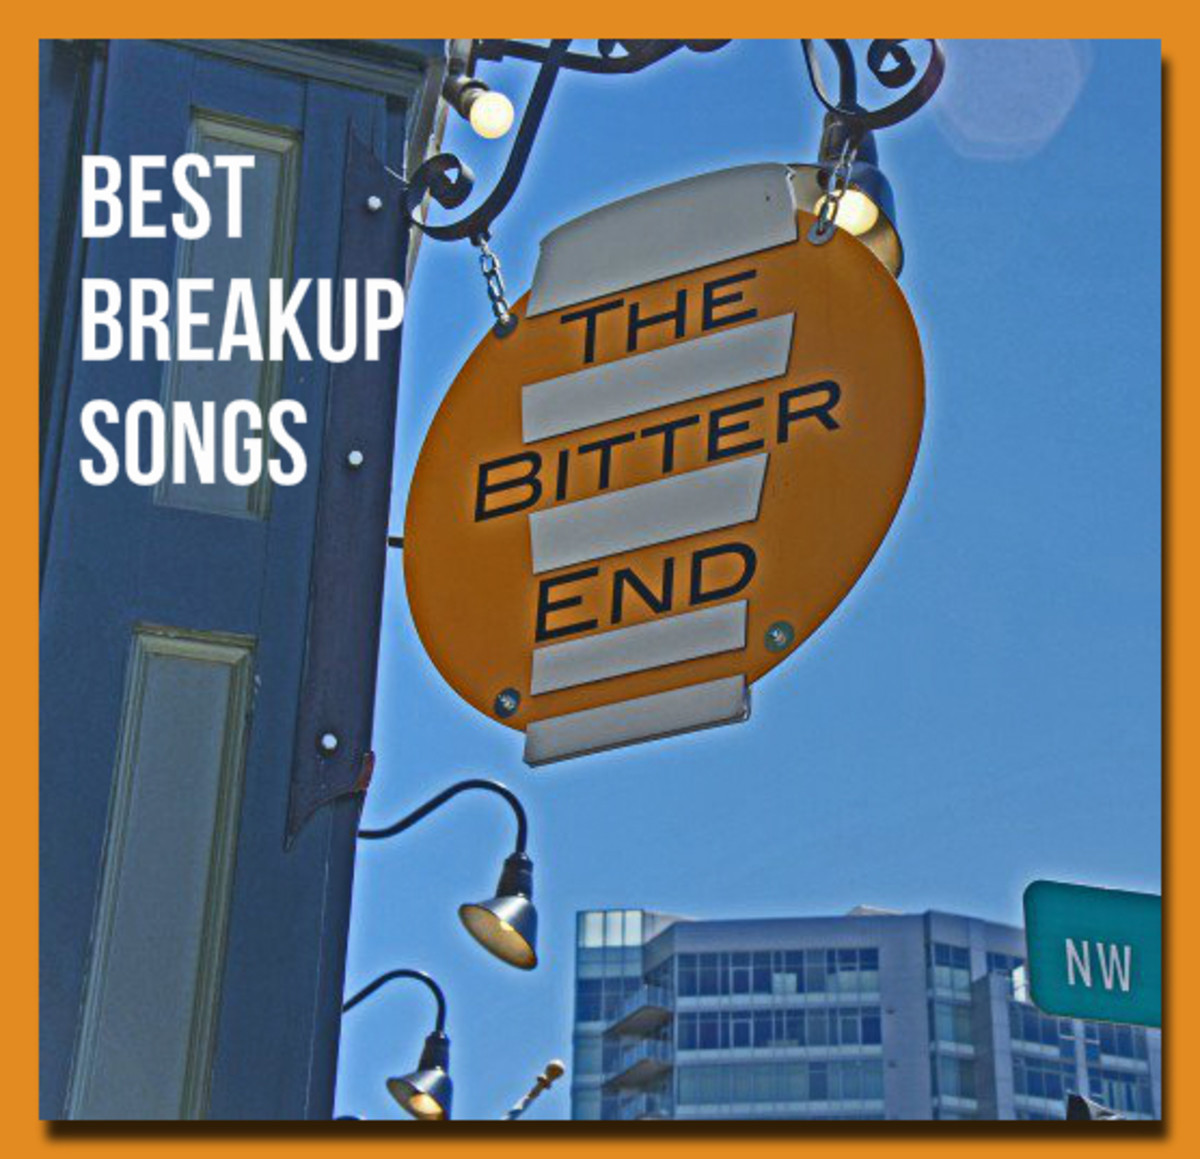 138 Songs About Breakups, Heartbreak, and Divorce